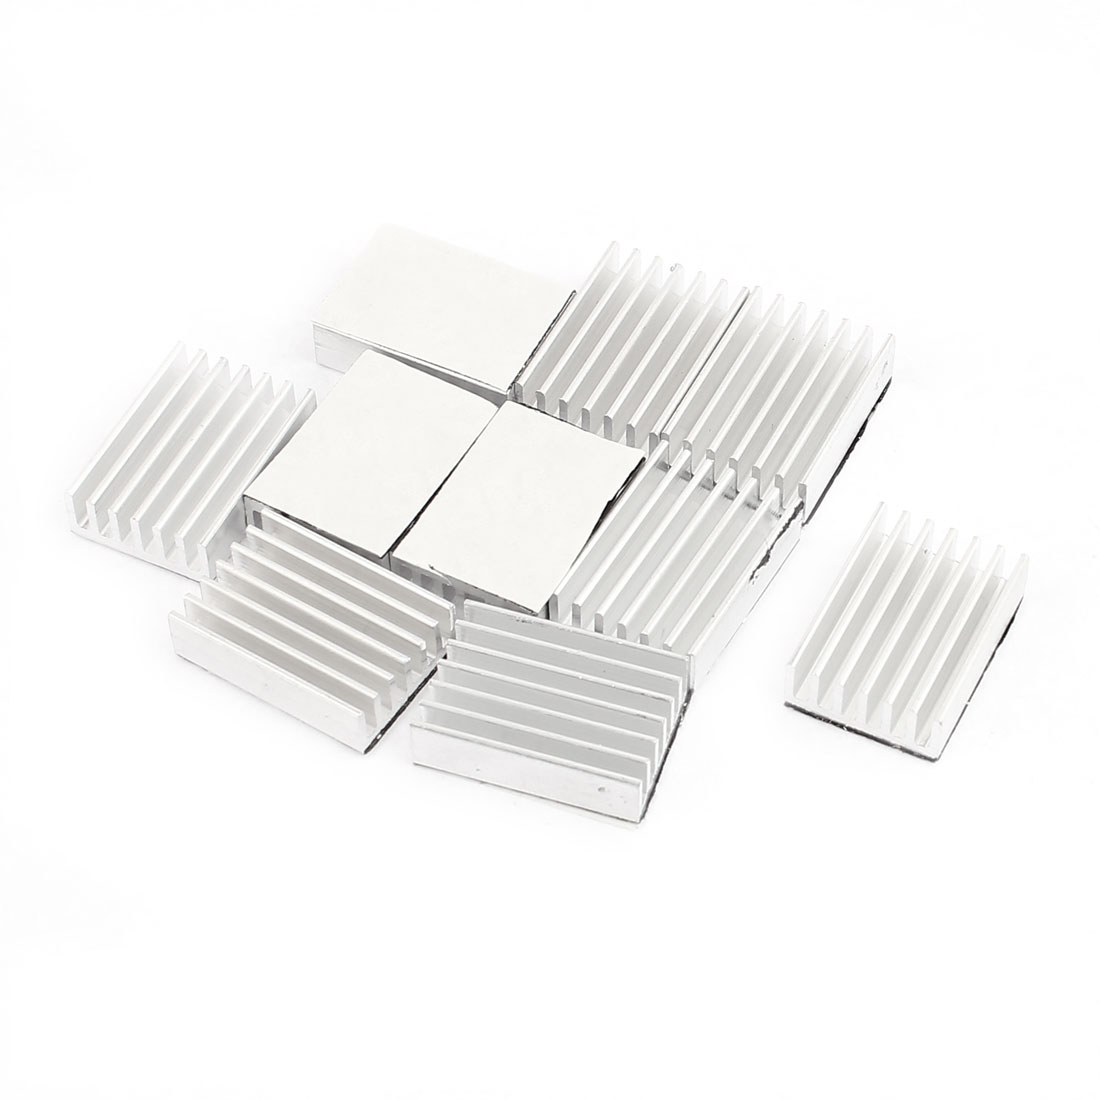 10 Pcs 20 x 14.5 x 5.5mm Aluminium Heat Sink Radiator Fin Heatsink Silver Tone